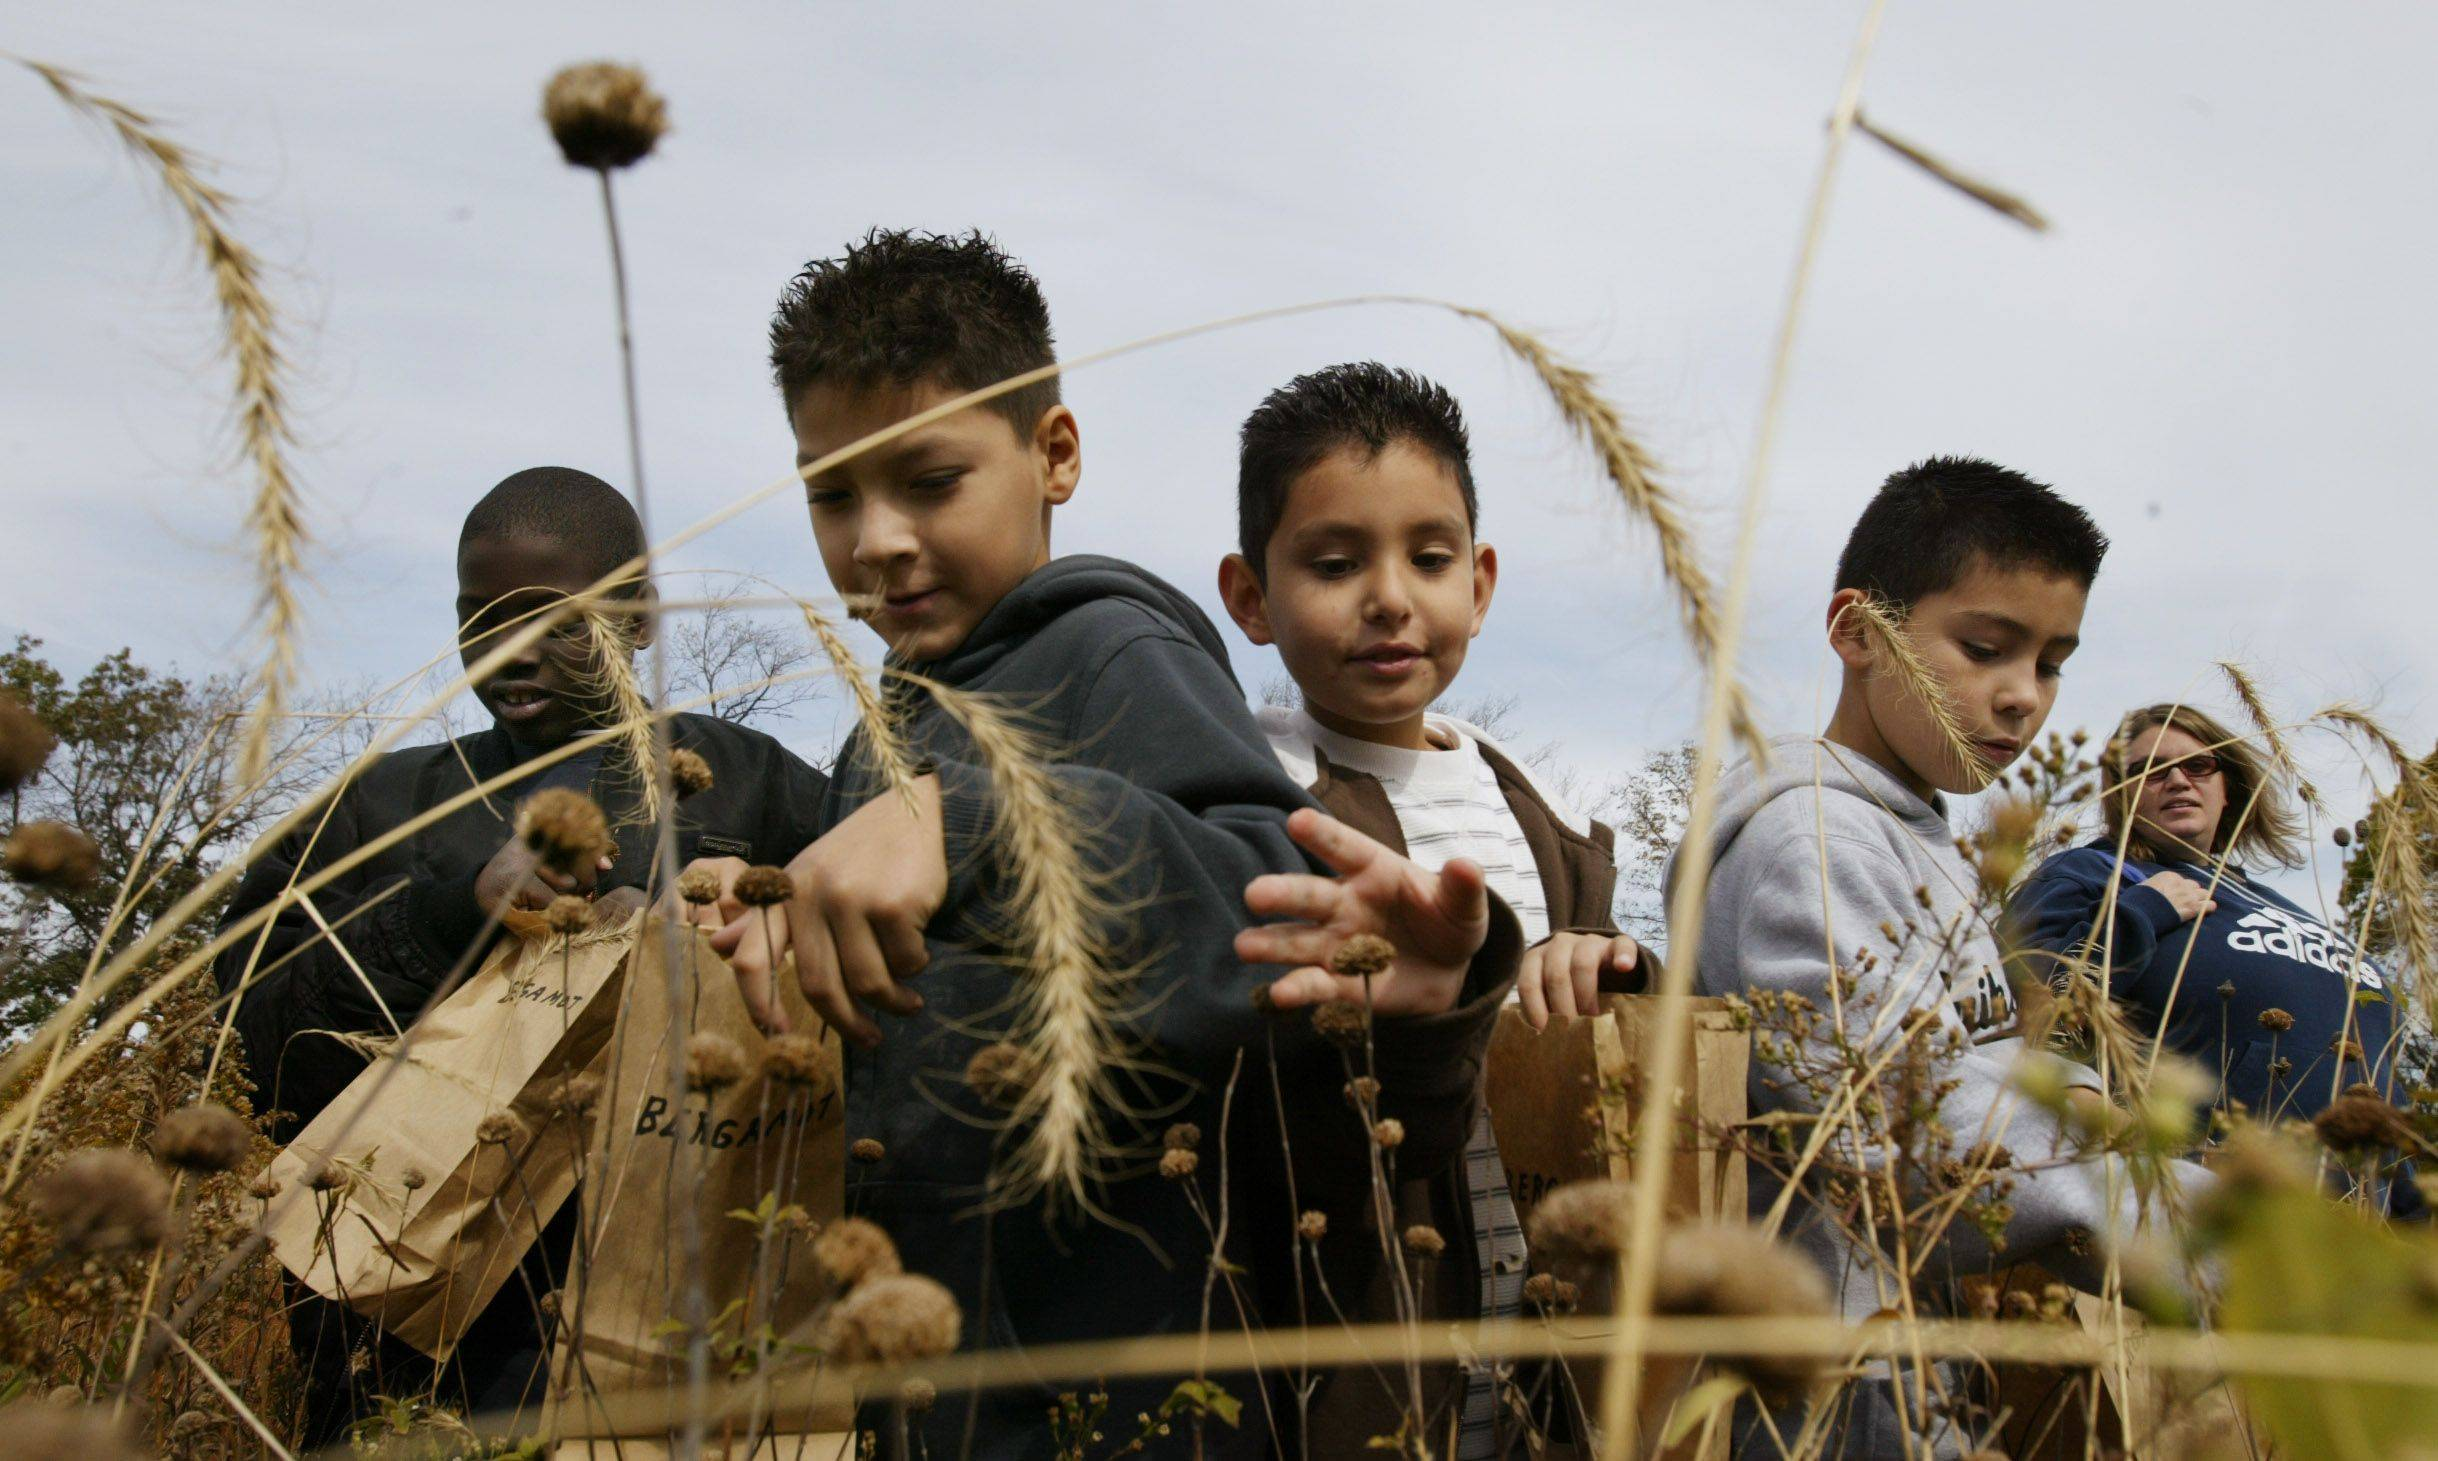 Perry Elementary third-graders Solomon Payton, left, Alex Rivas, Vanancio Mejia and Alexis Garcia reach for bergamot seeds Tuesday as they work with Dundee-Crown honors environmental research students to gather prairie seeds at Snuffy's Prairie in Carpentersville.